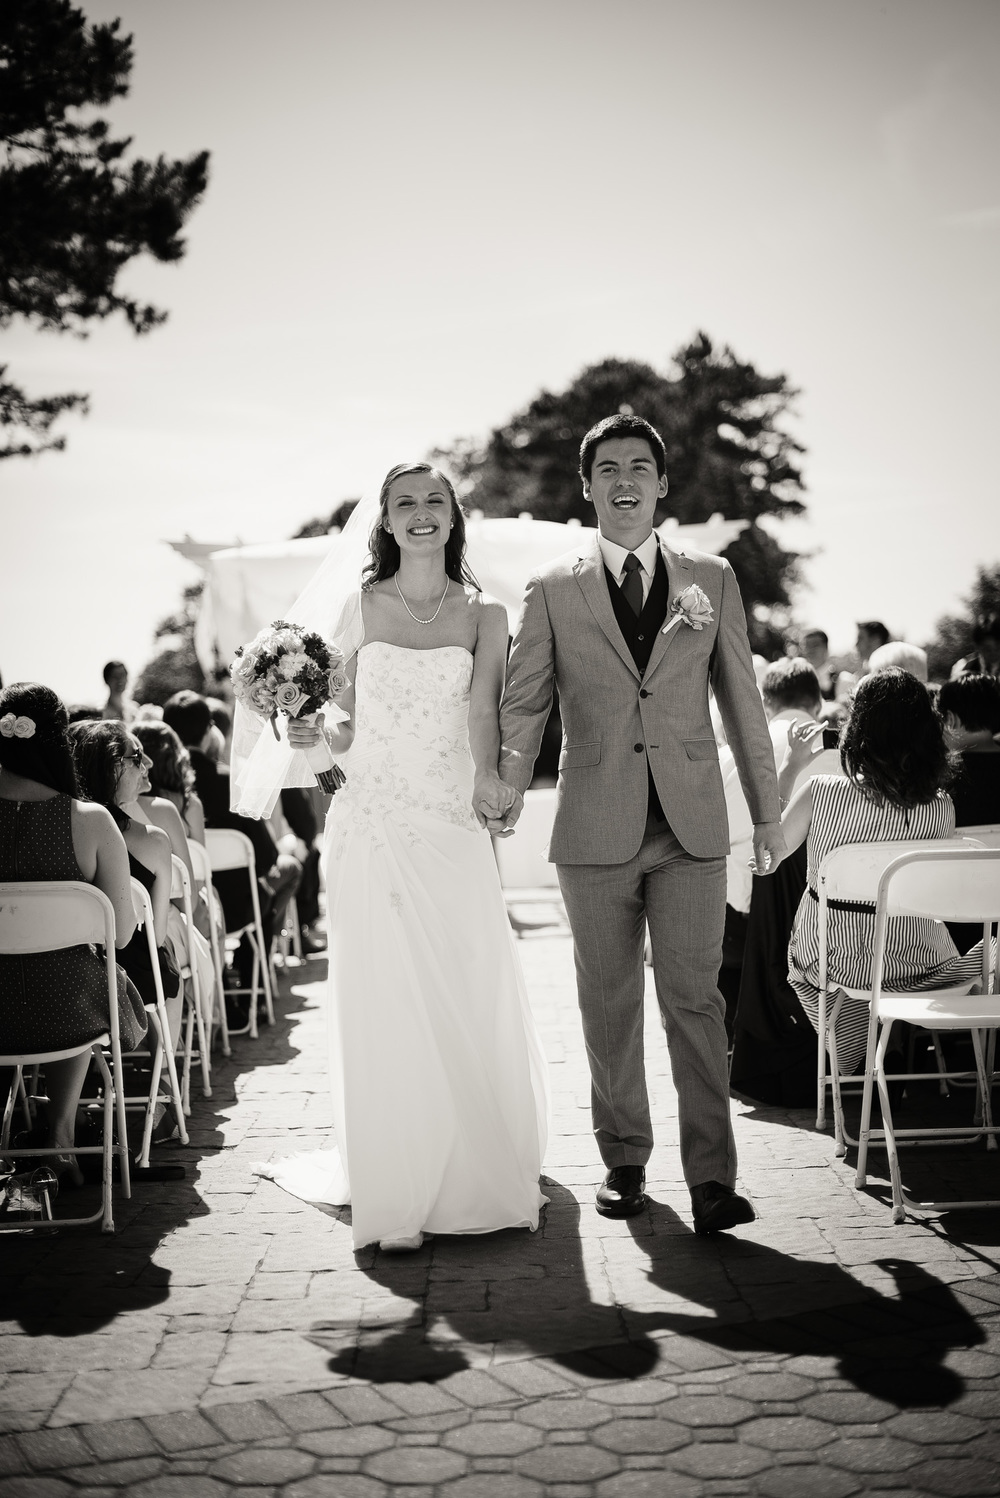 groom bride sunshine daytime wedding ceremony husband wife joy celebration happiness portrait THPHOTO bw